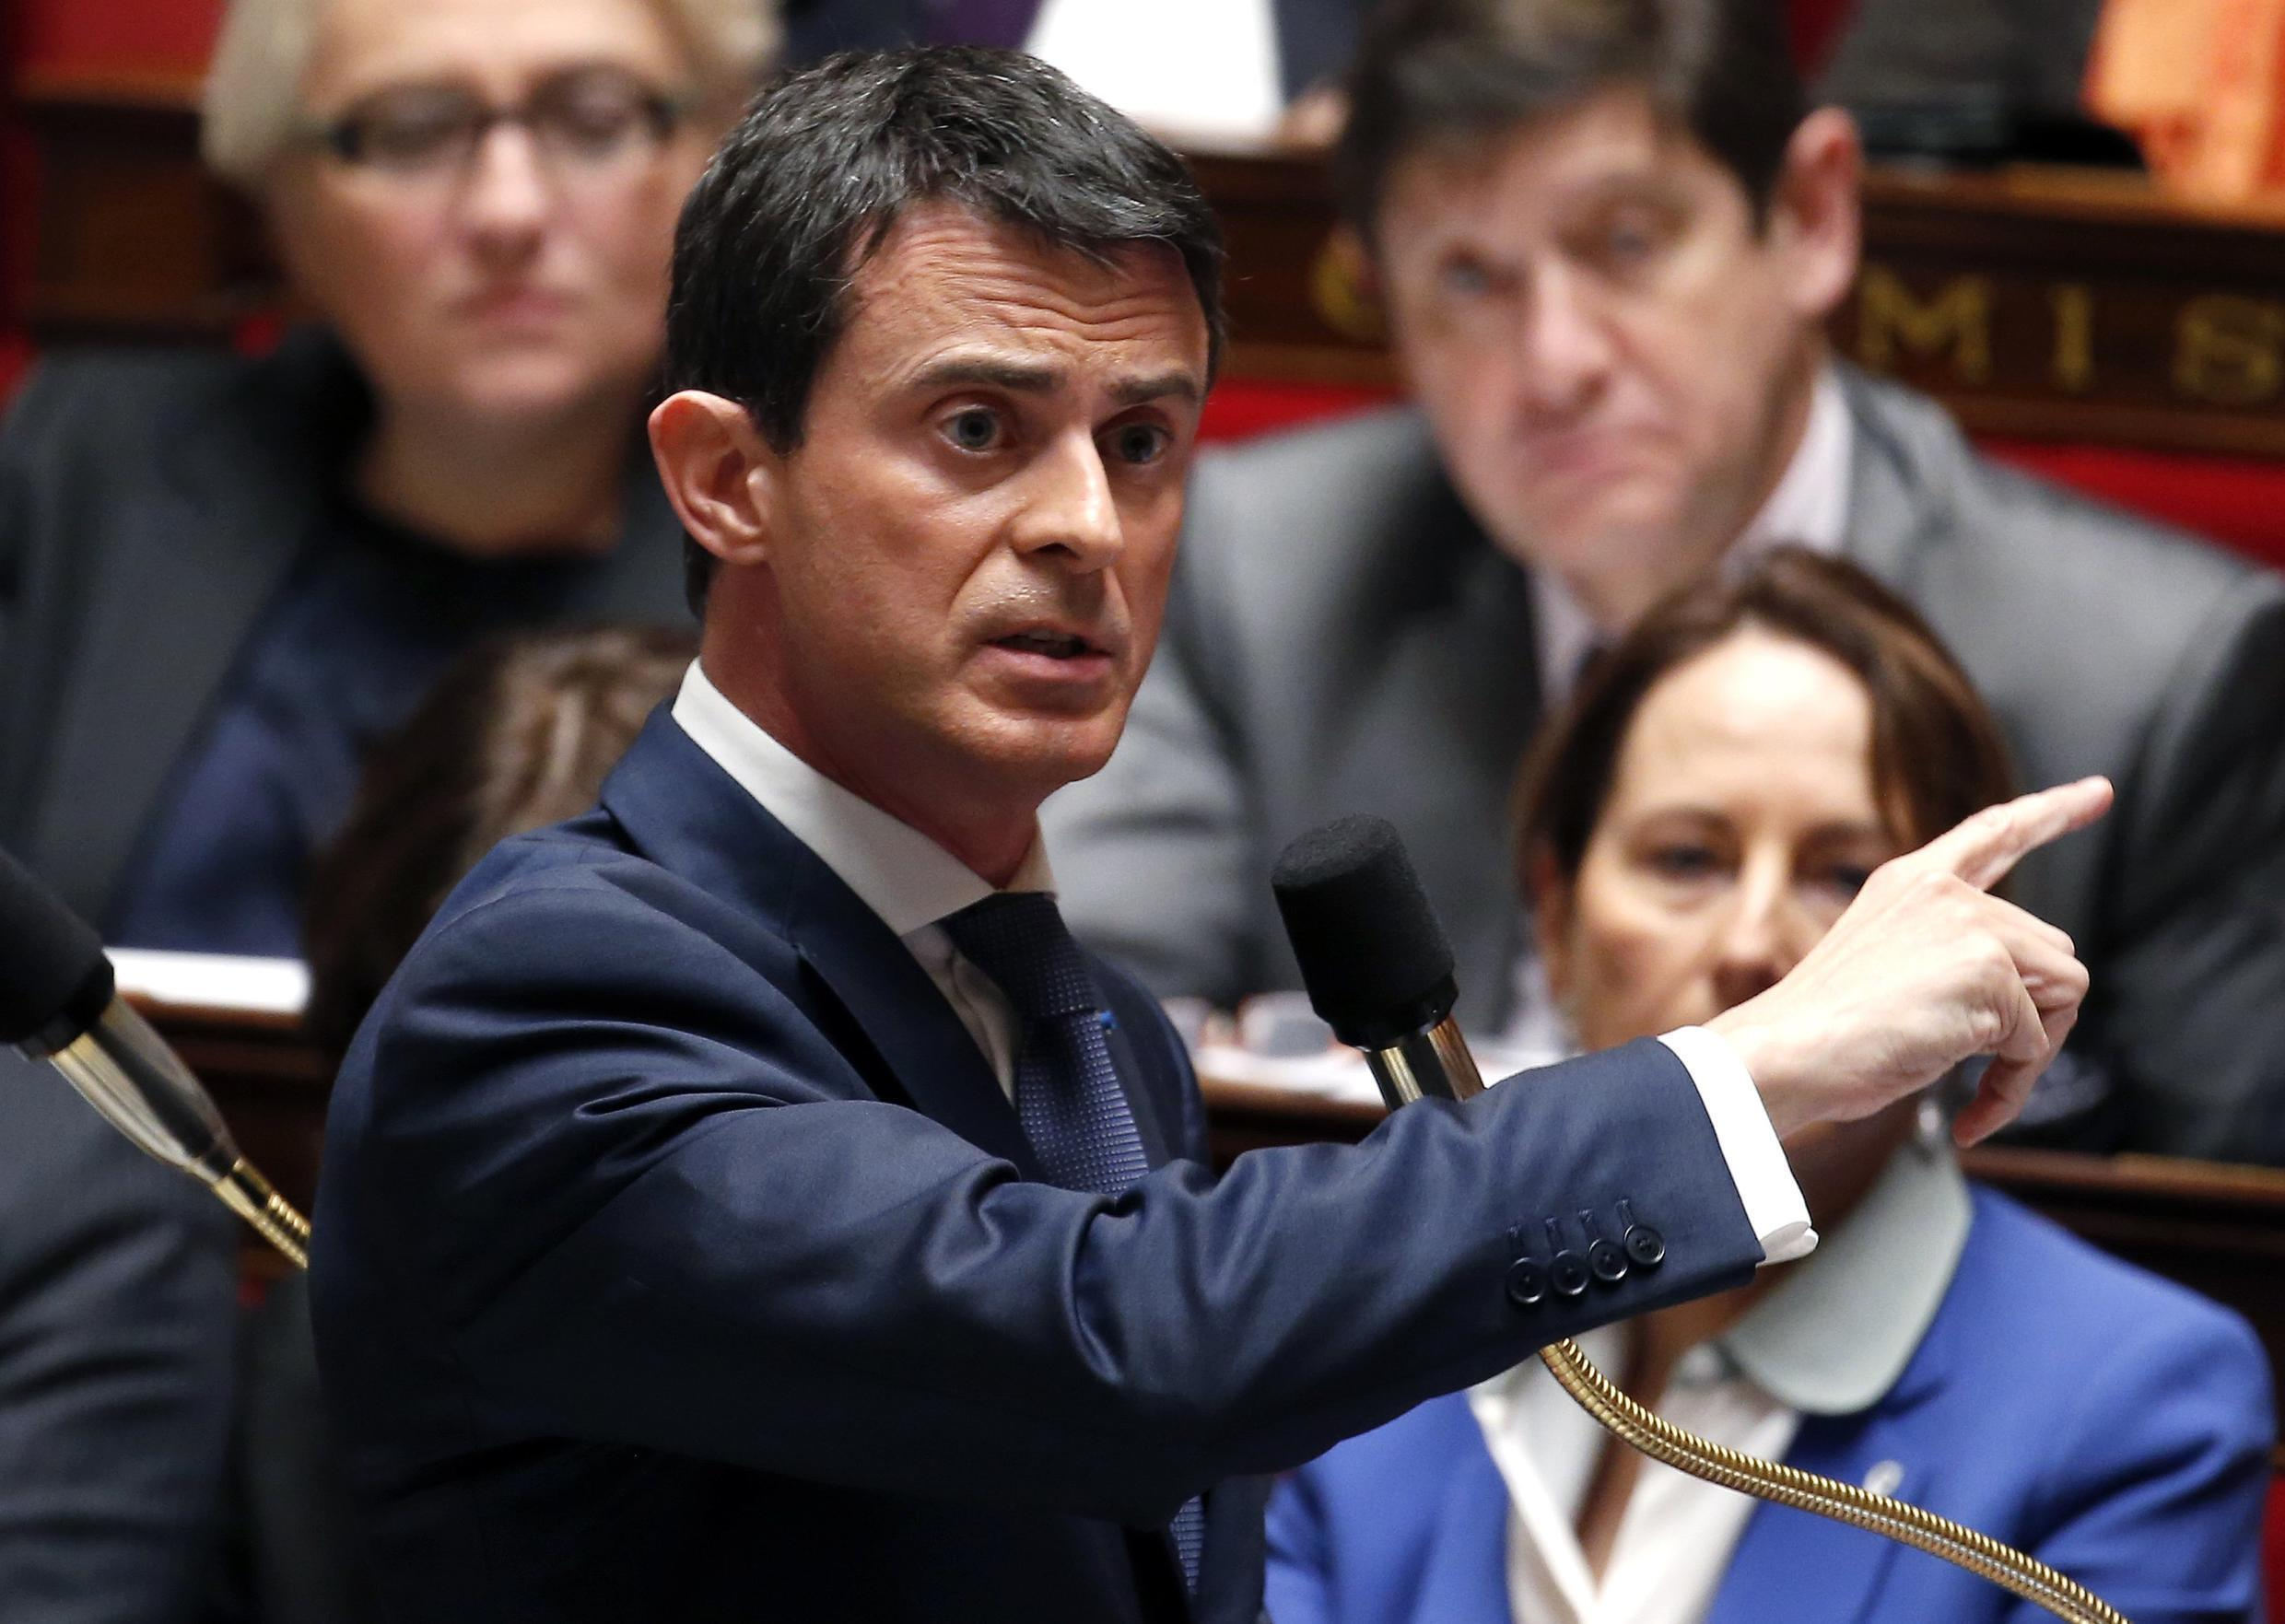 French Prime Minister Manuel Valls said that France and Europe continue to face very high terror threats.